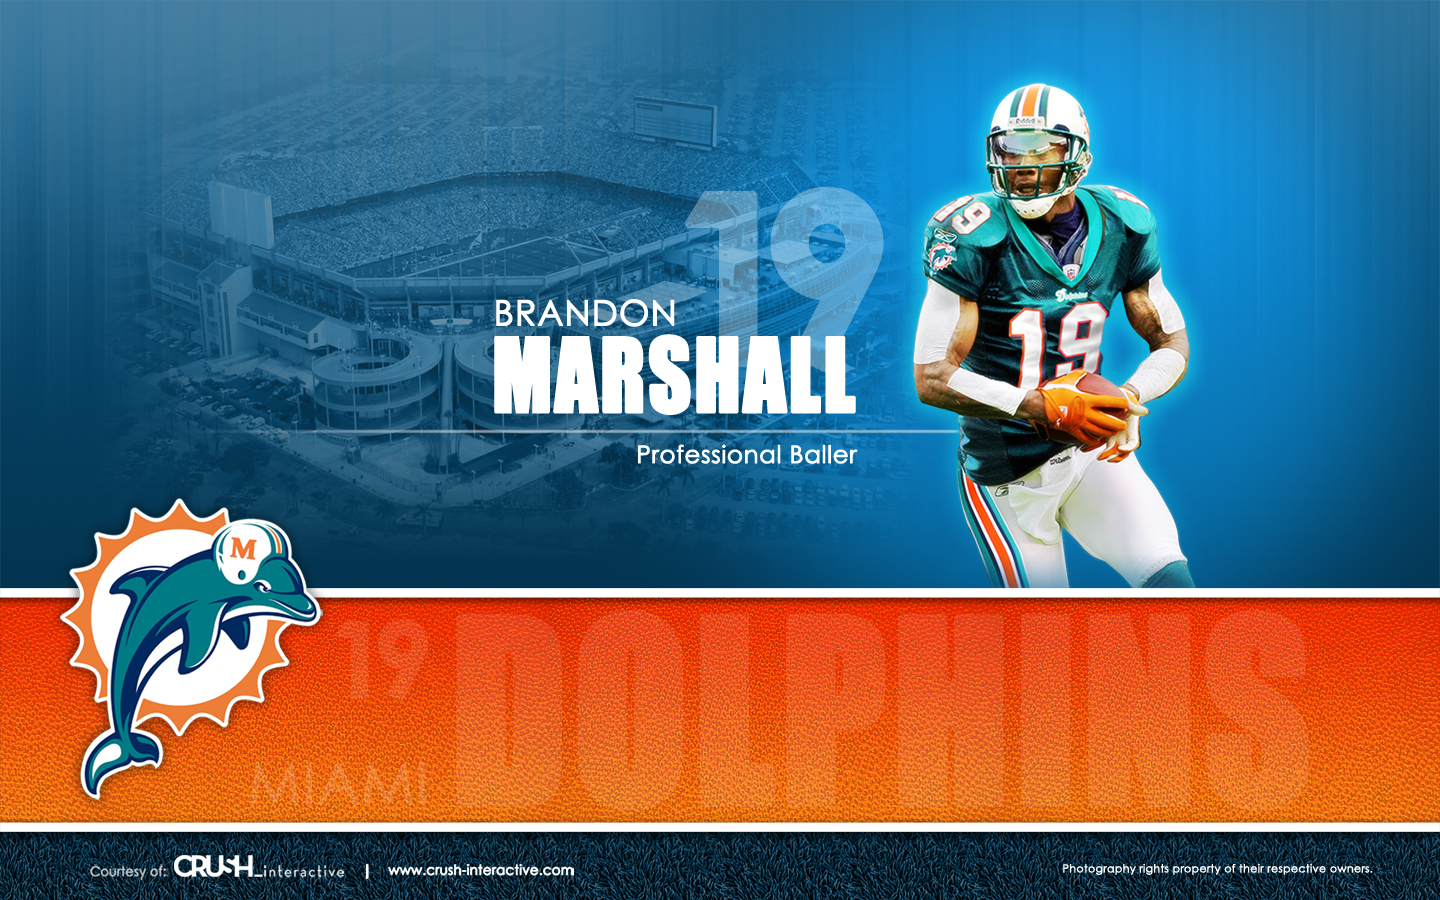 Enjoy This Miami Dolphins Background Wallpapers 1440x900